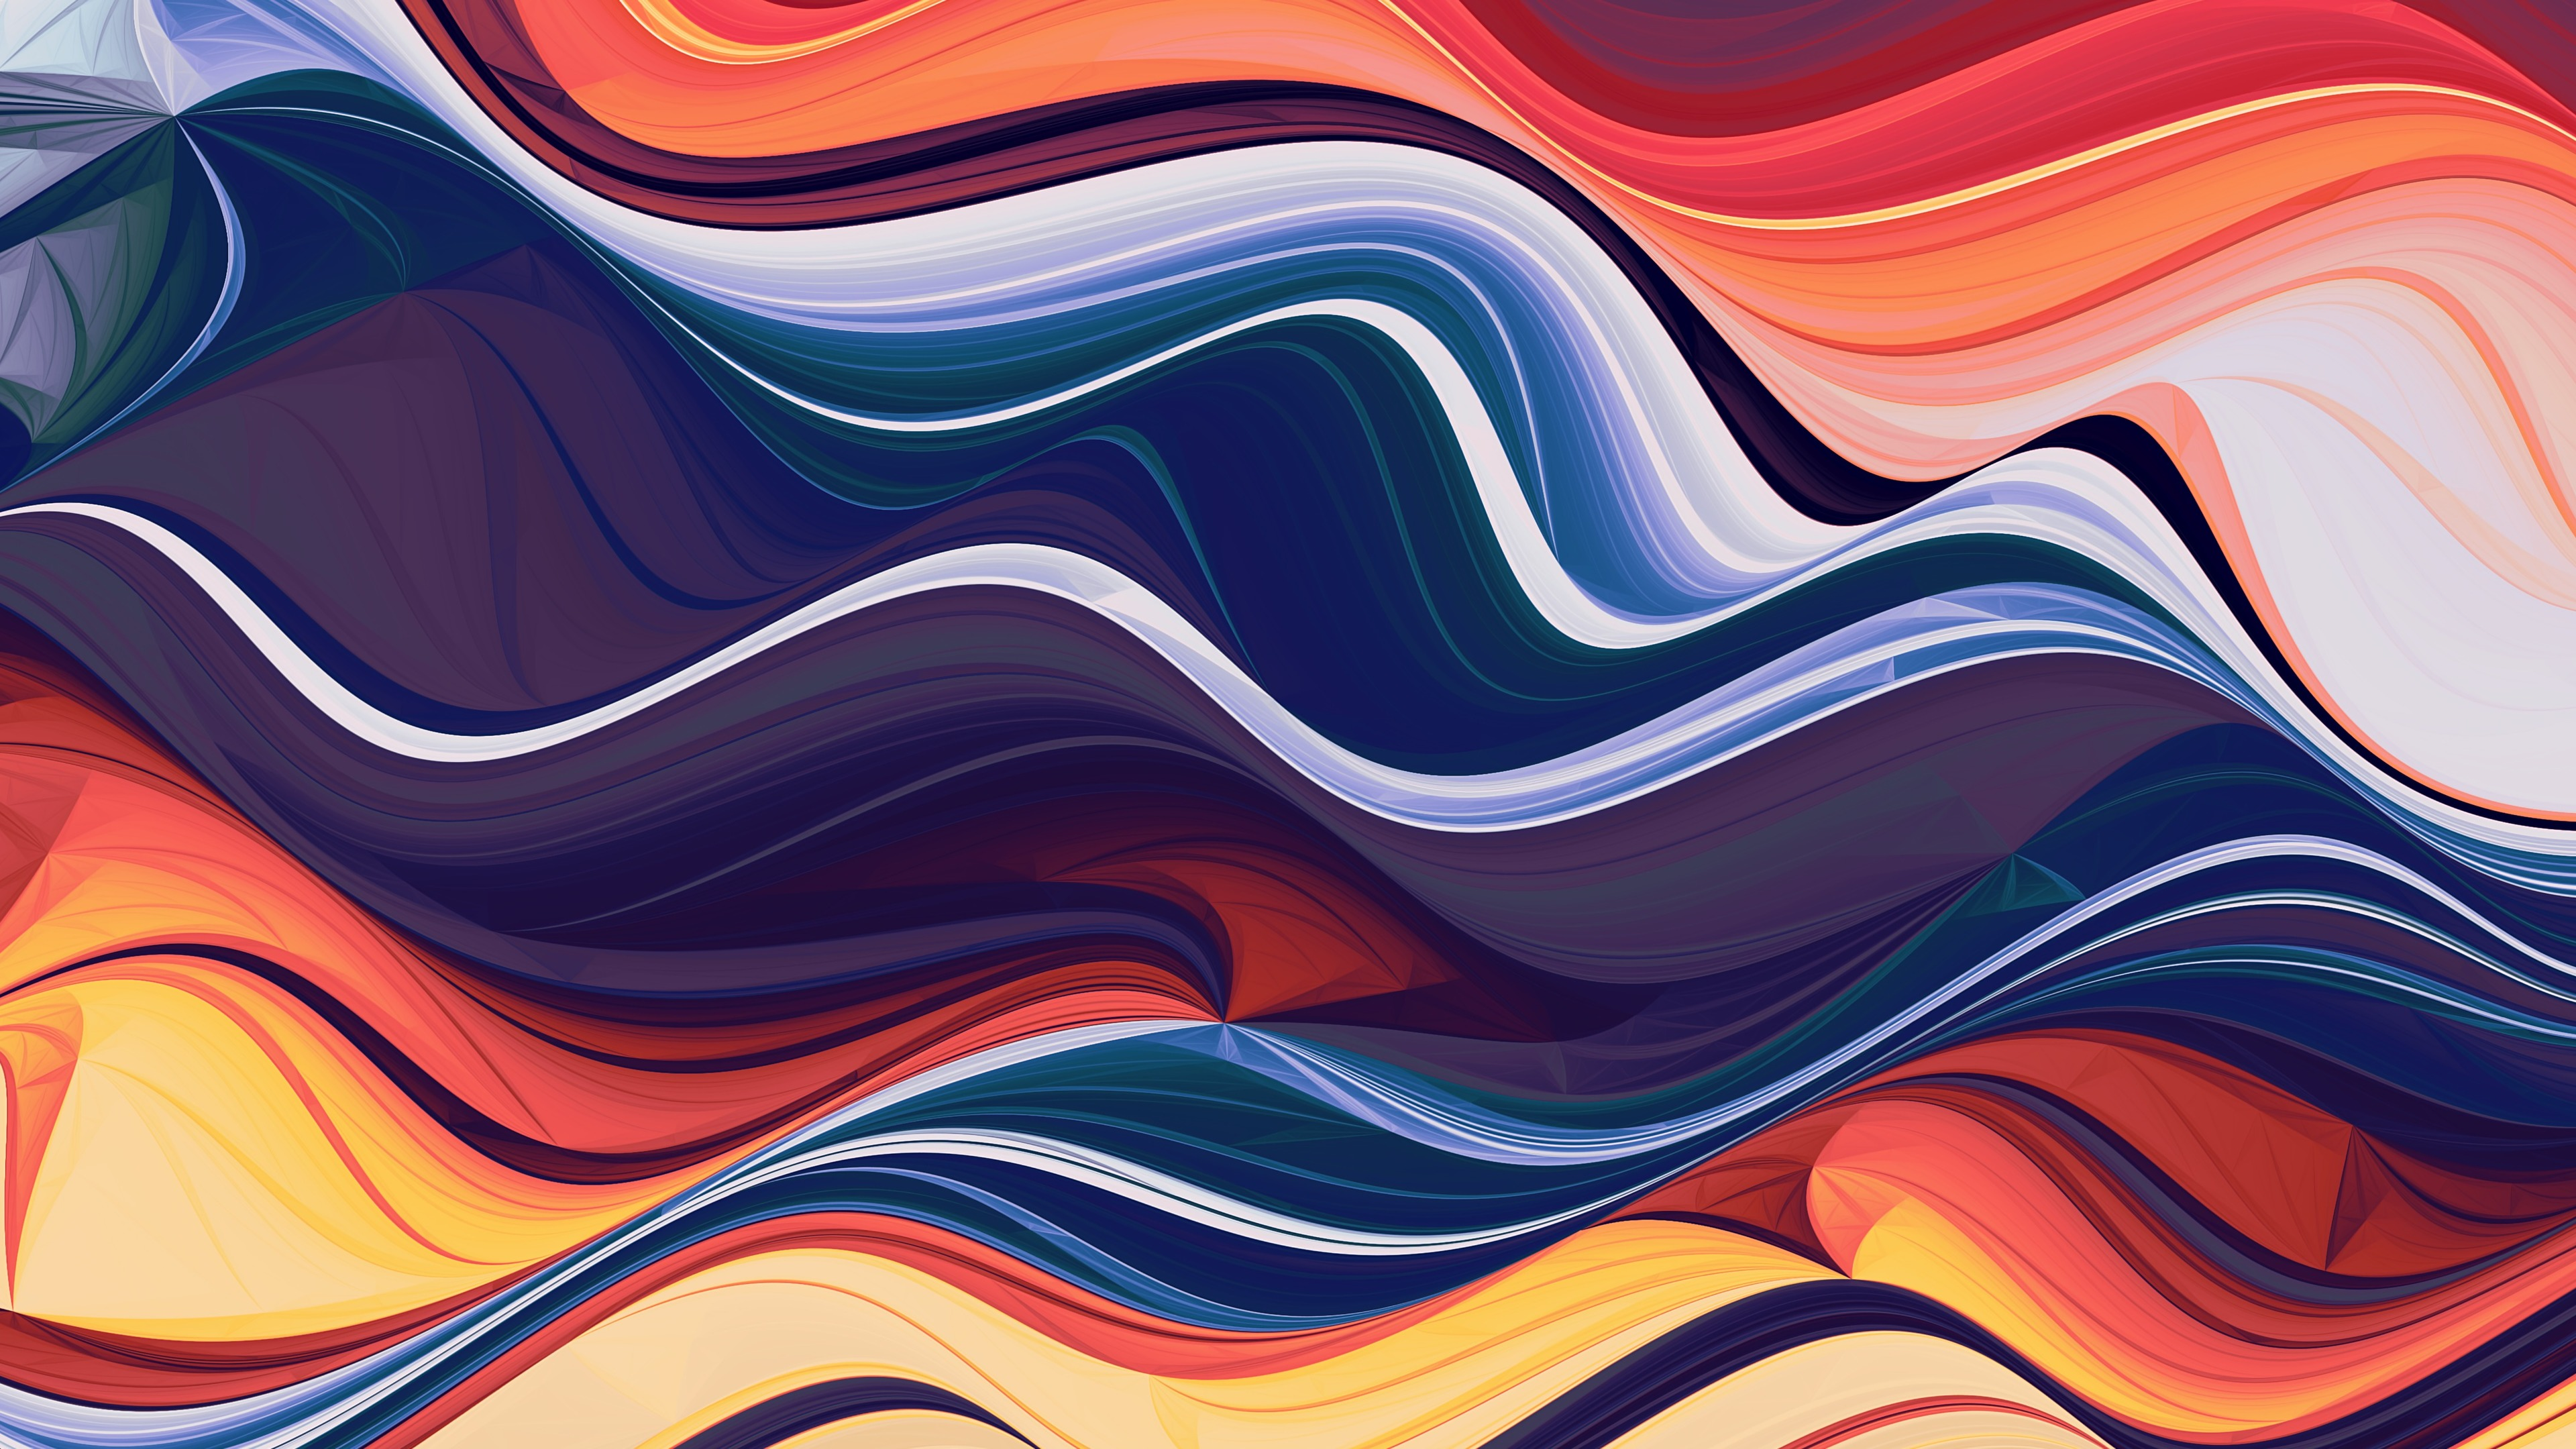 colorful abstraction waves 1565055991 - Colorful Abstraction Waves - waves wallpapers, hd-wallpapers, deviantart wallpapers, colorful wallpapers, abstract wallpapers, 4k-wallpapers